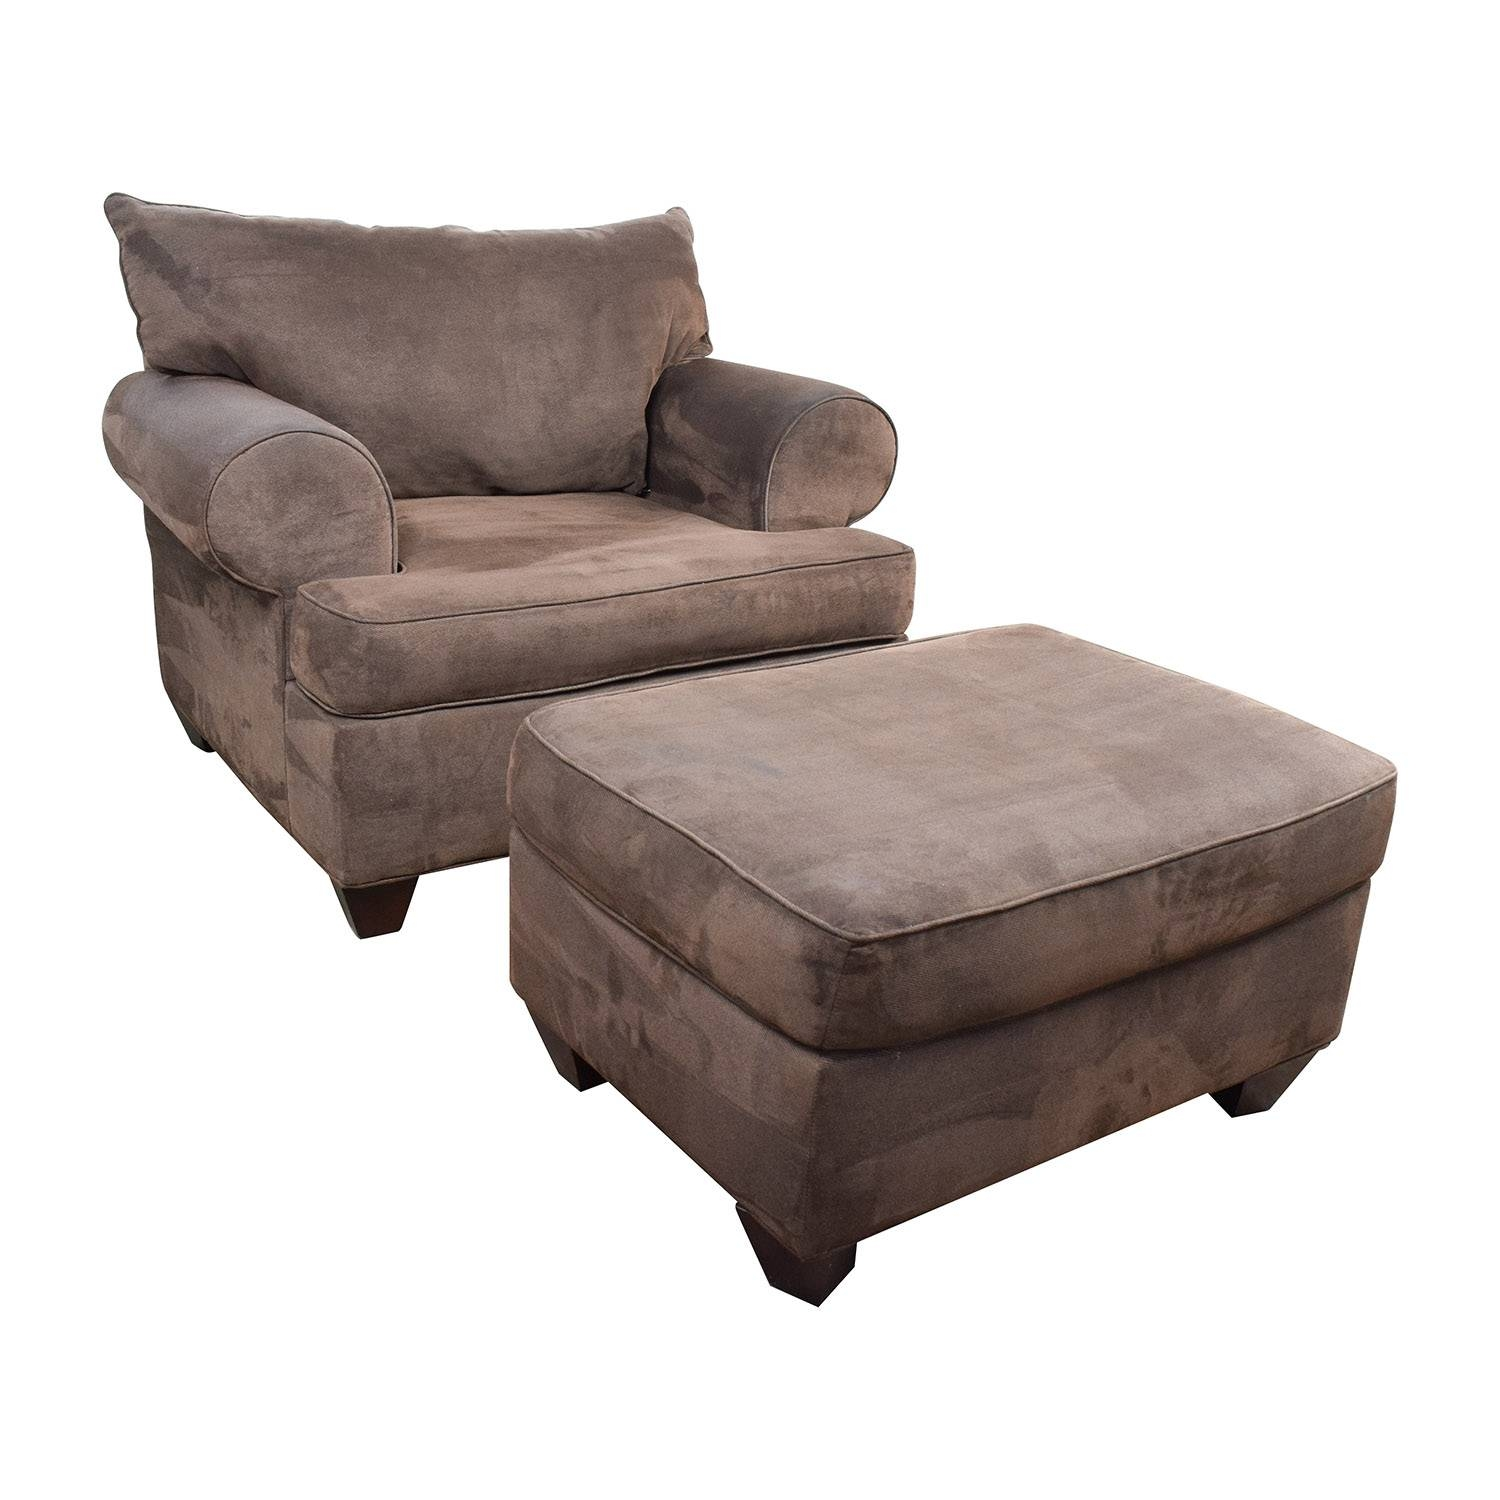 67% Off - Dark Brown Sofa Chair With Ottoman / Chairs pertaining to Sofa Chair With Ottoman (Image 2 of 30)